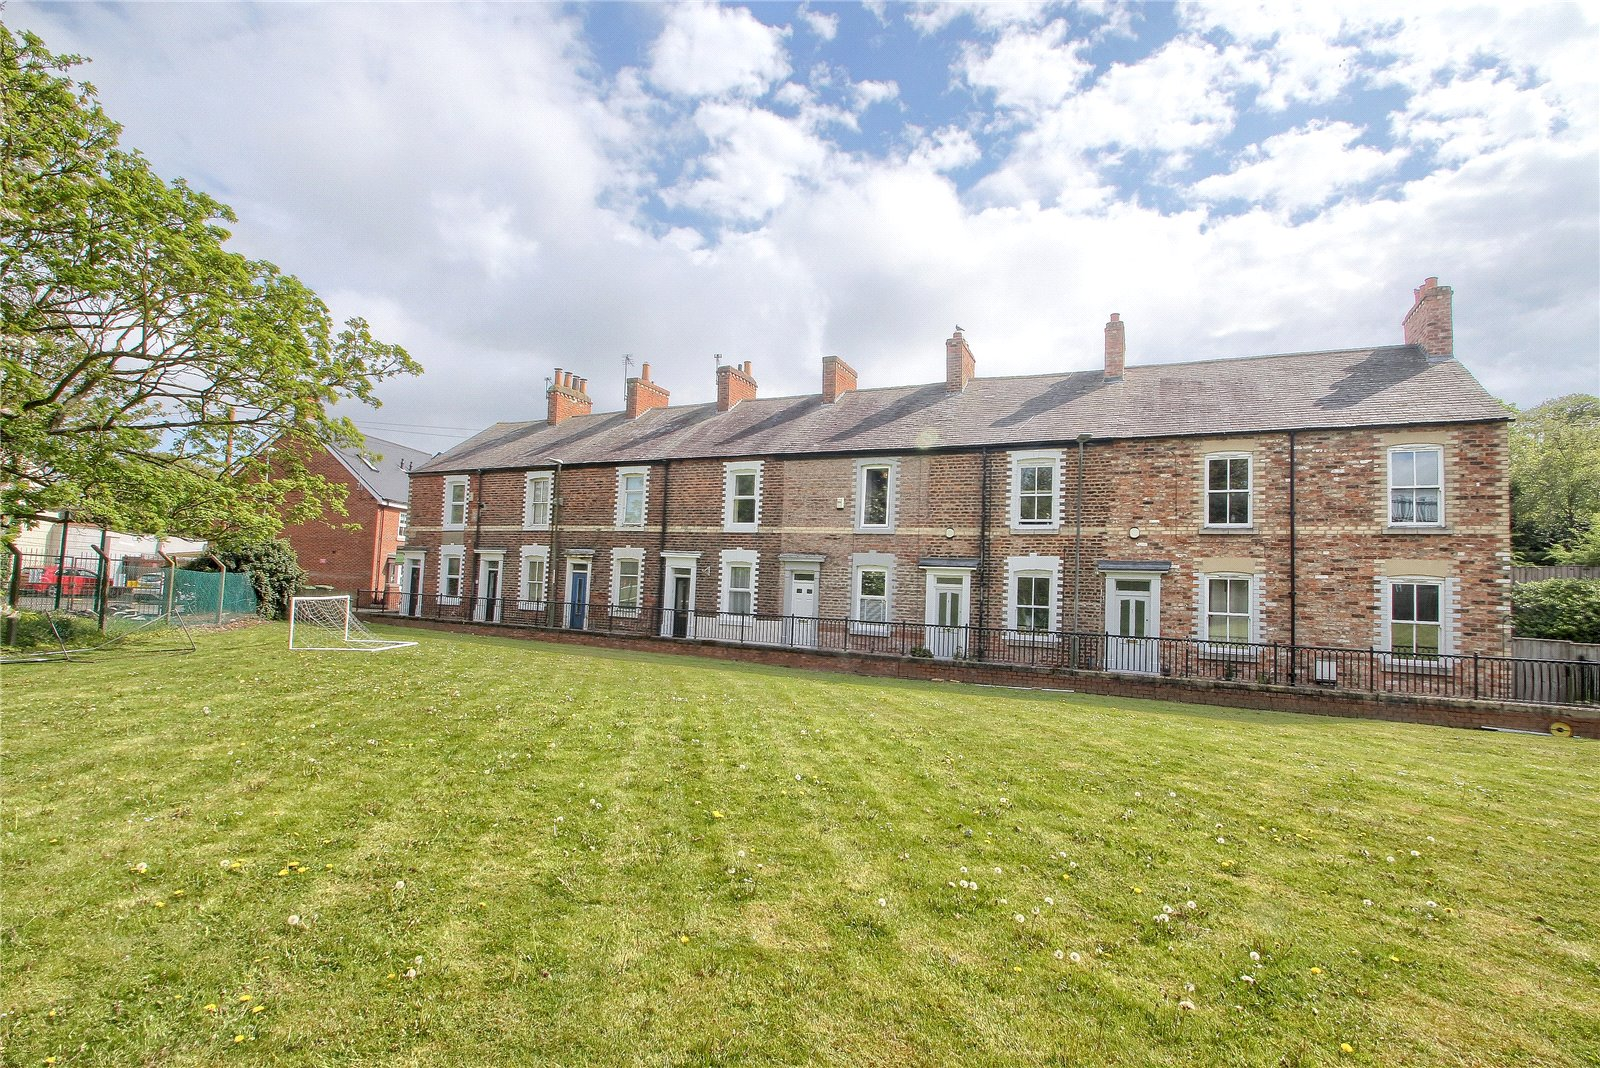 2 bed house for sale in Hermitage Place, Norton 1